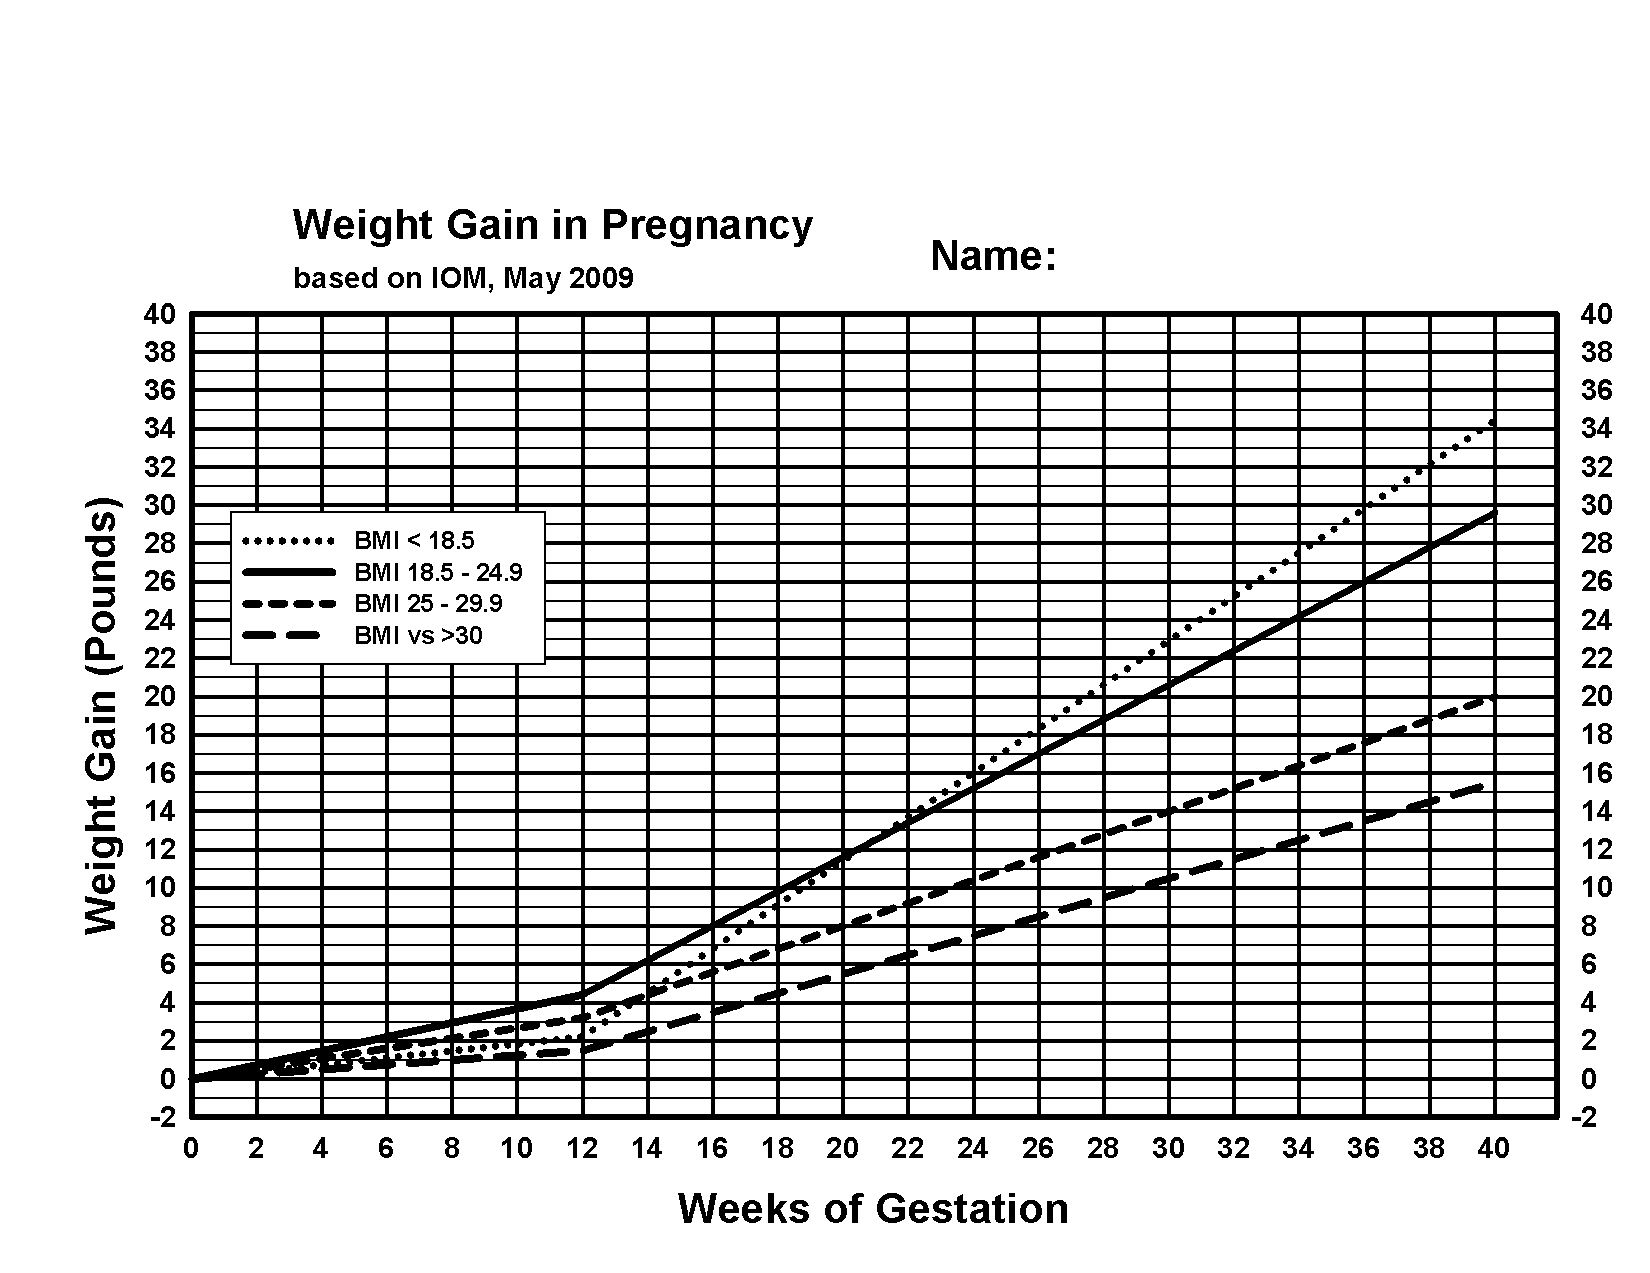 Fetal weight chart choice image free any chart examples pregnancy weight gain chart australia pregnancy weight gain hd image of weight chart pregnancy choice image nvjuhfo Images